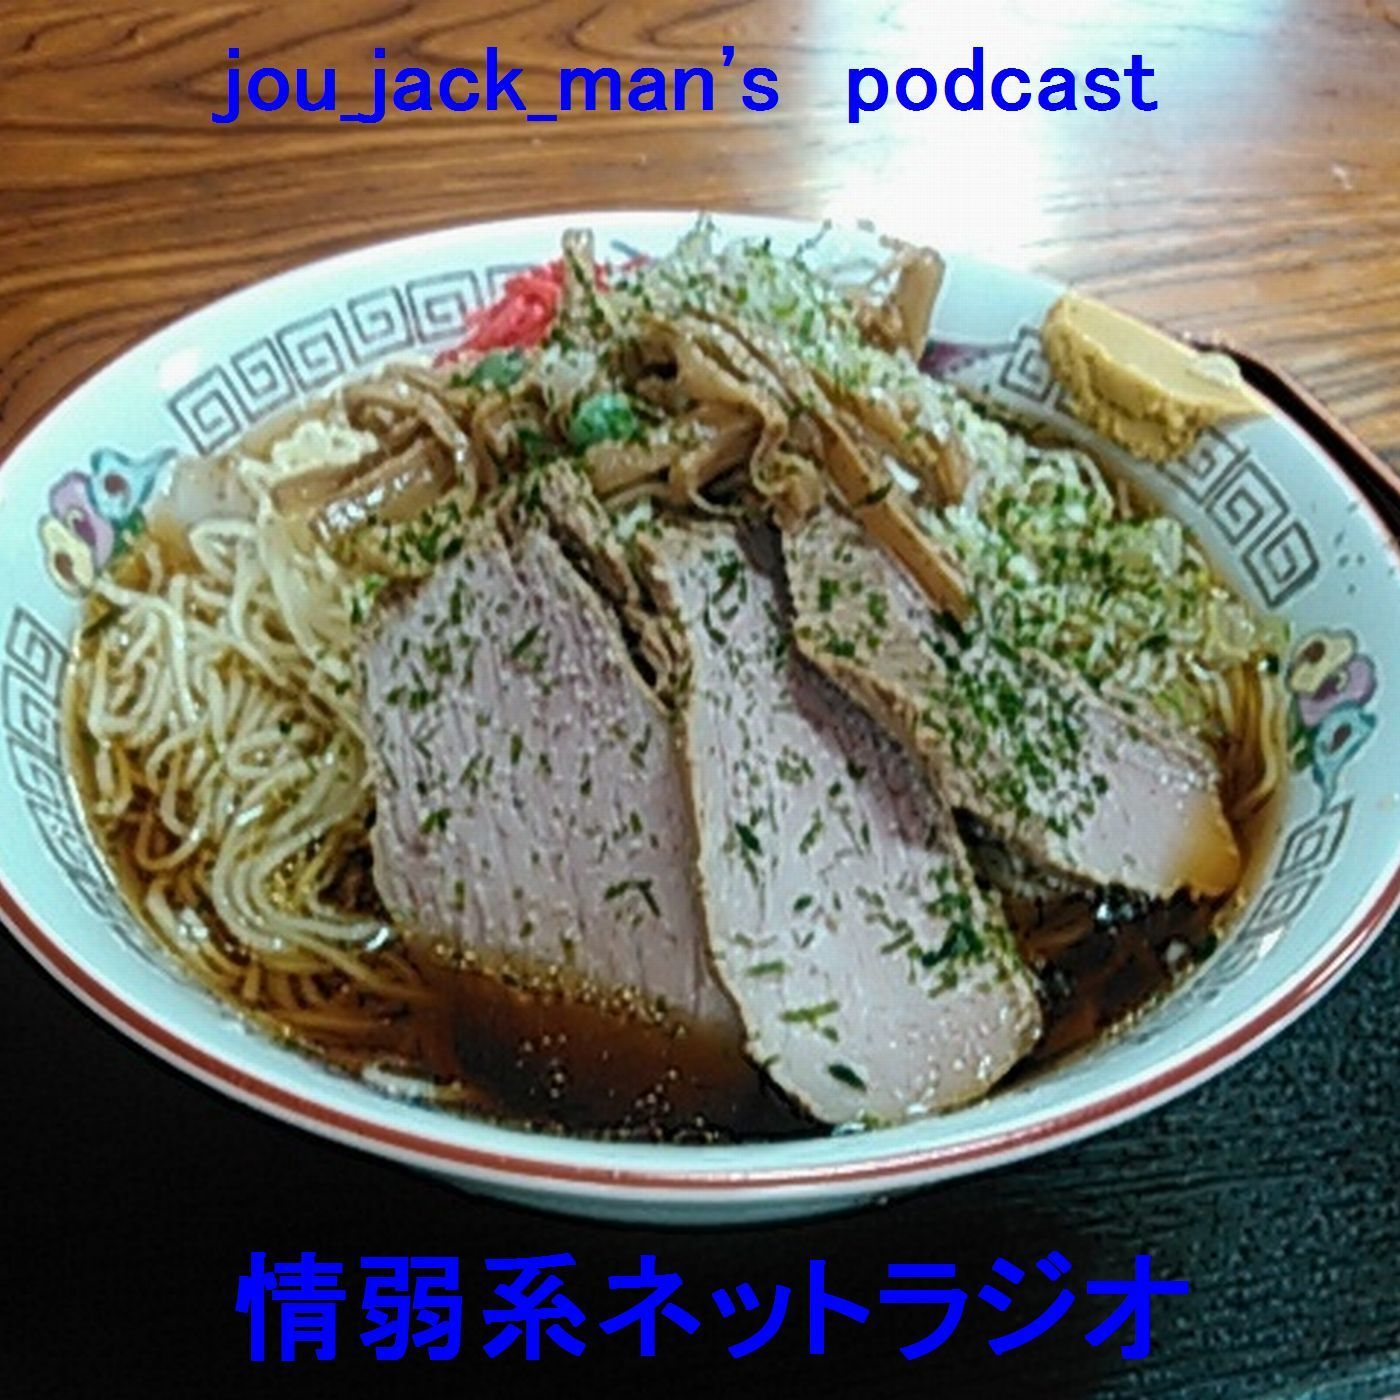 Joe_Jack_Man's_Podcast